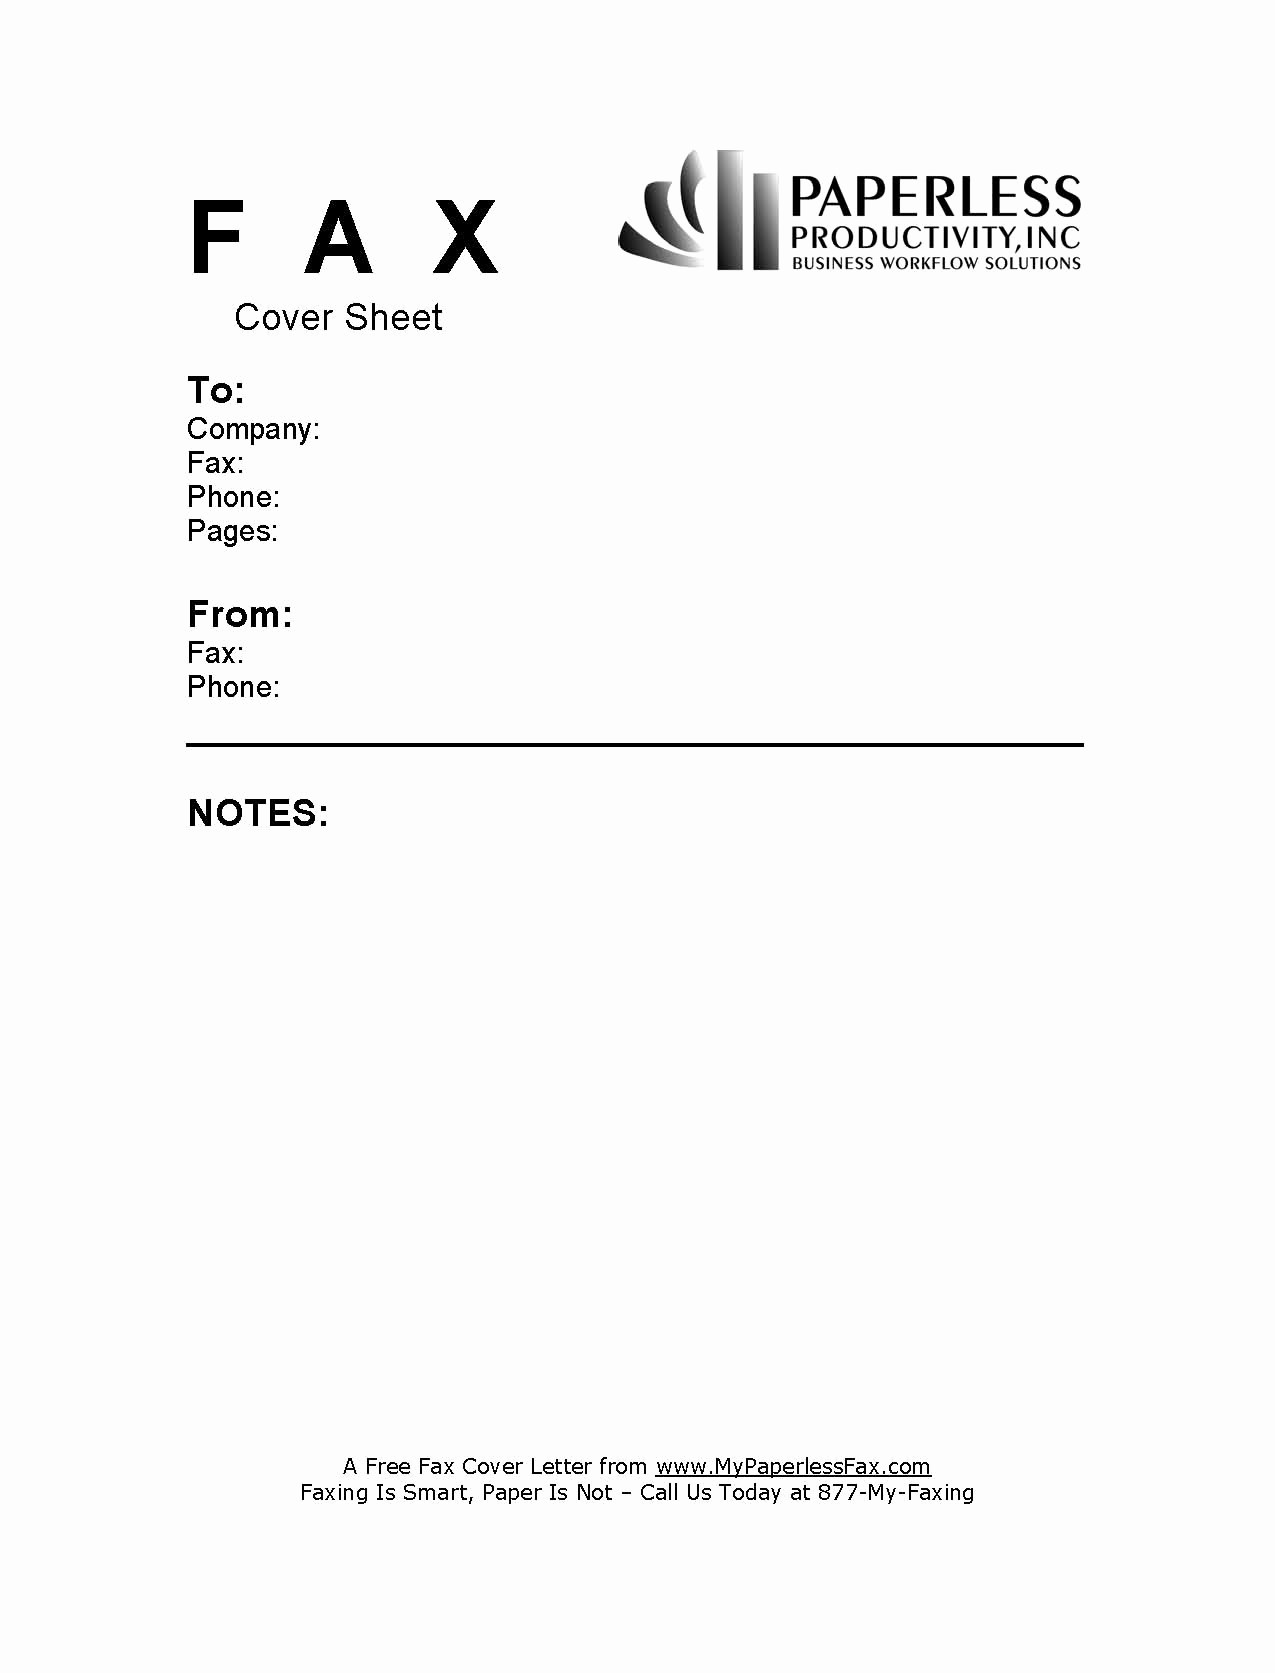 Fax Cover Sheet Sample Template Best Of 17 Cover Page Template Free Download Fax Cover